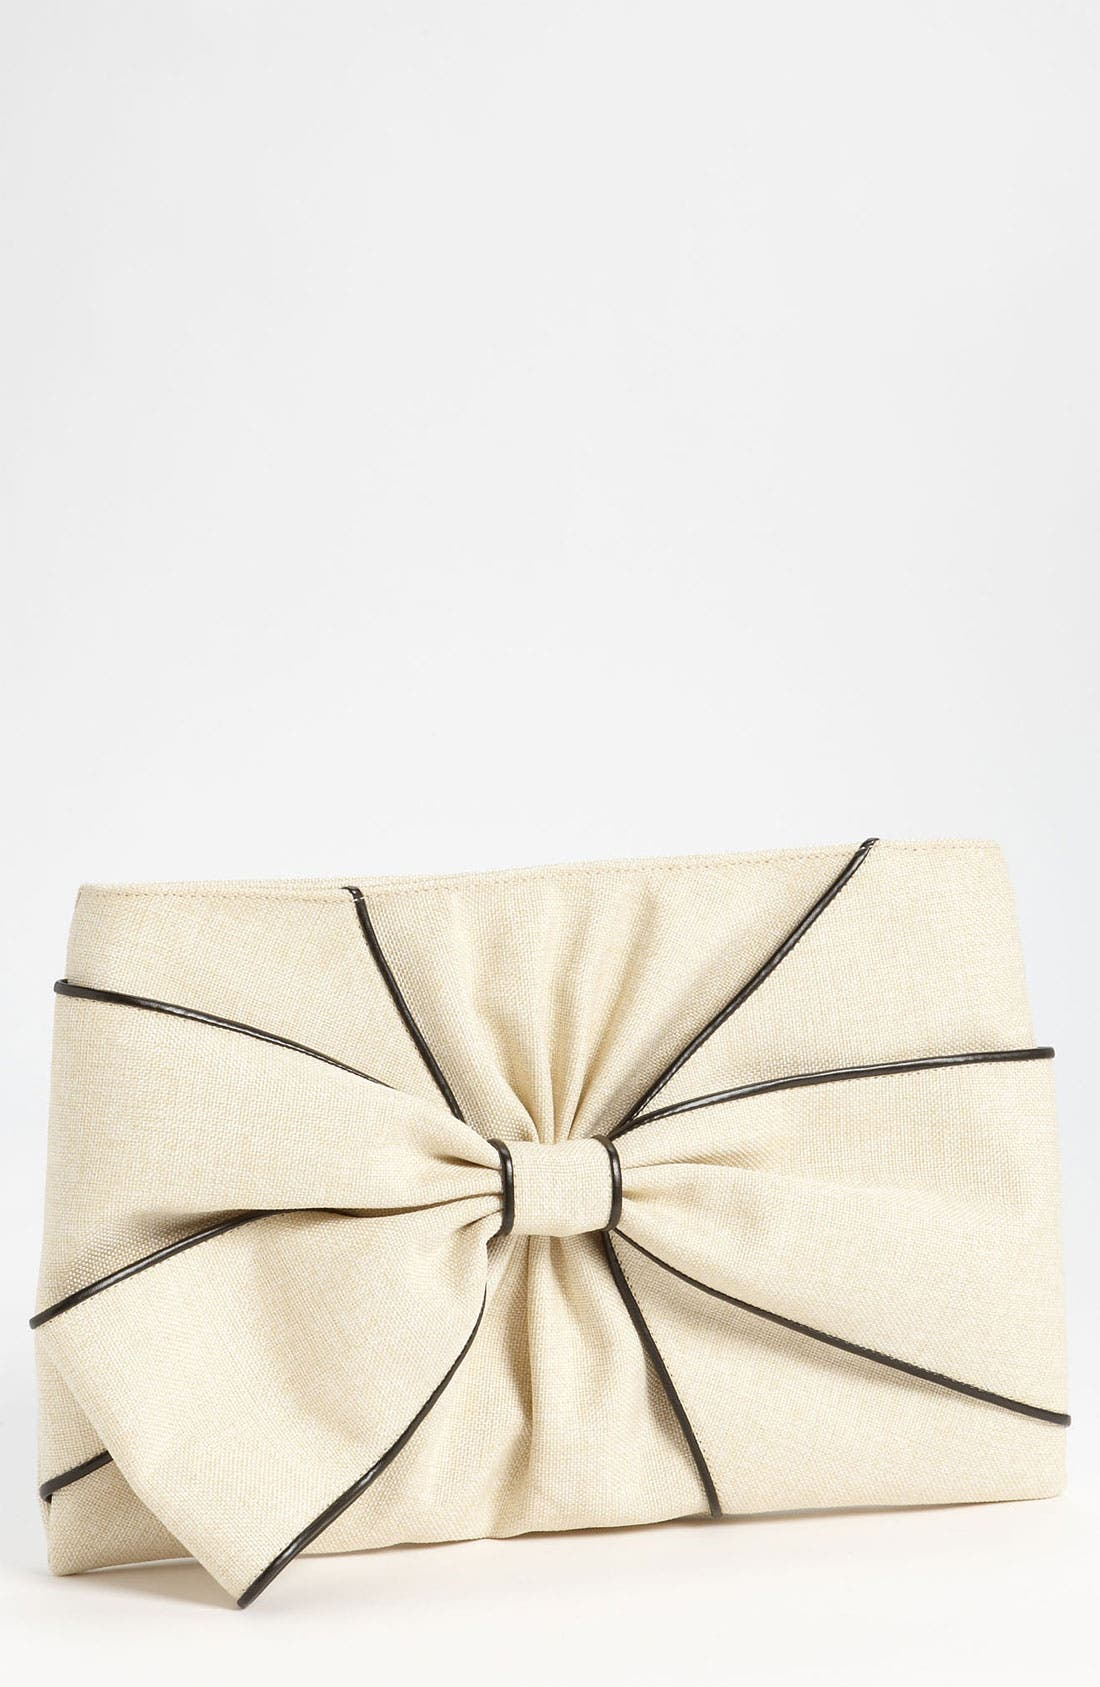 Alternate Image 1 Selected - kate spade new york 'hope avenue - jesslyn' clutch